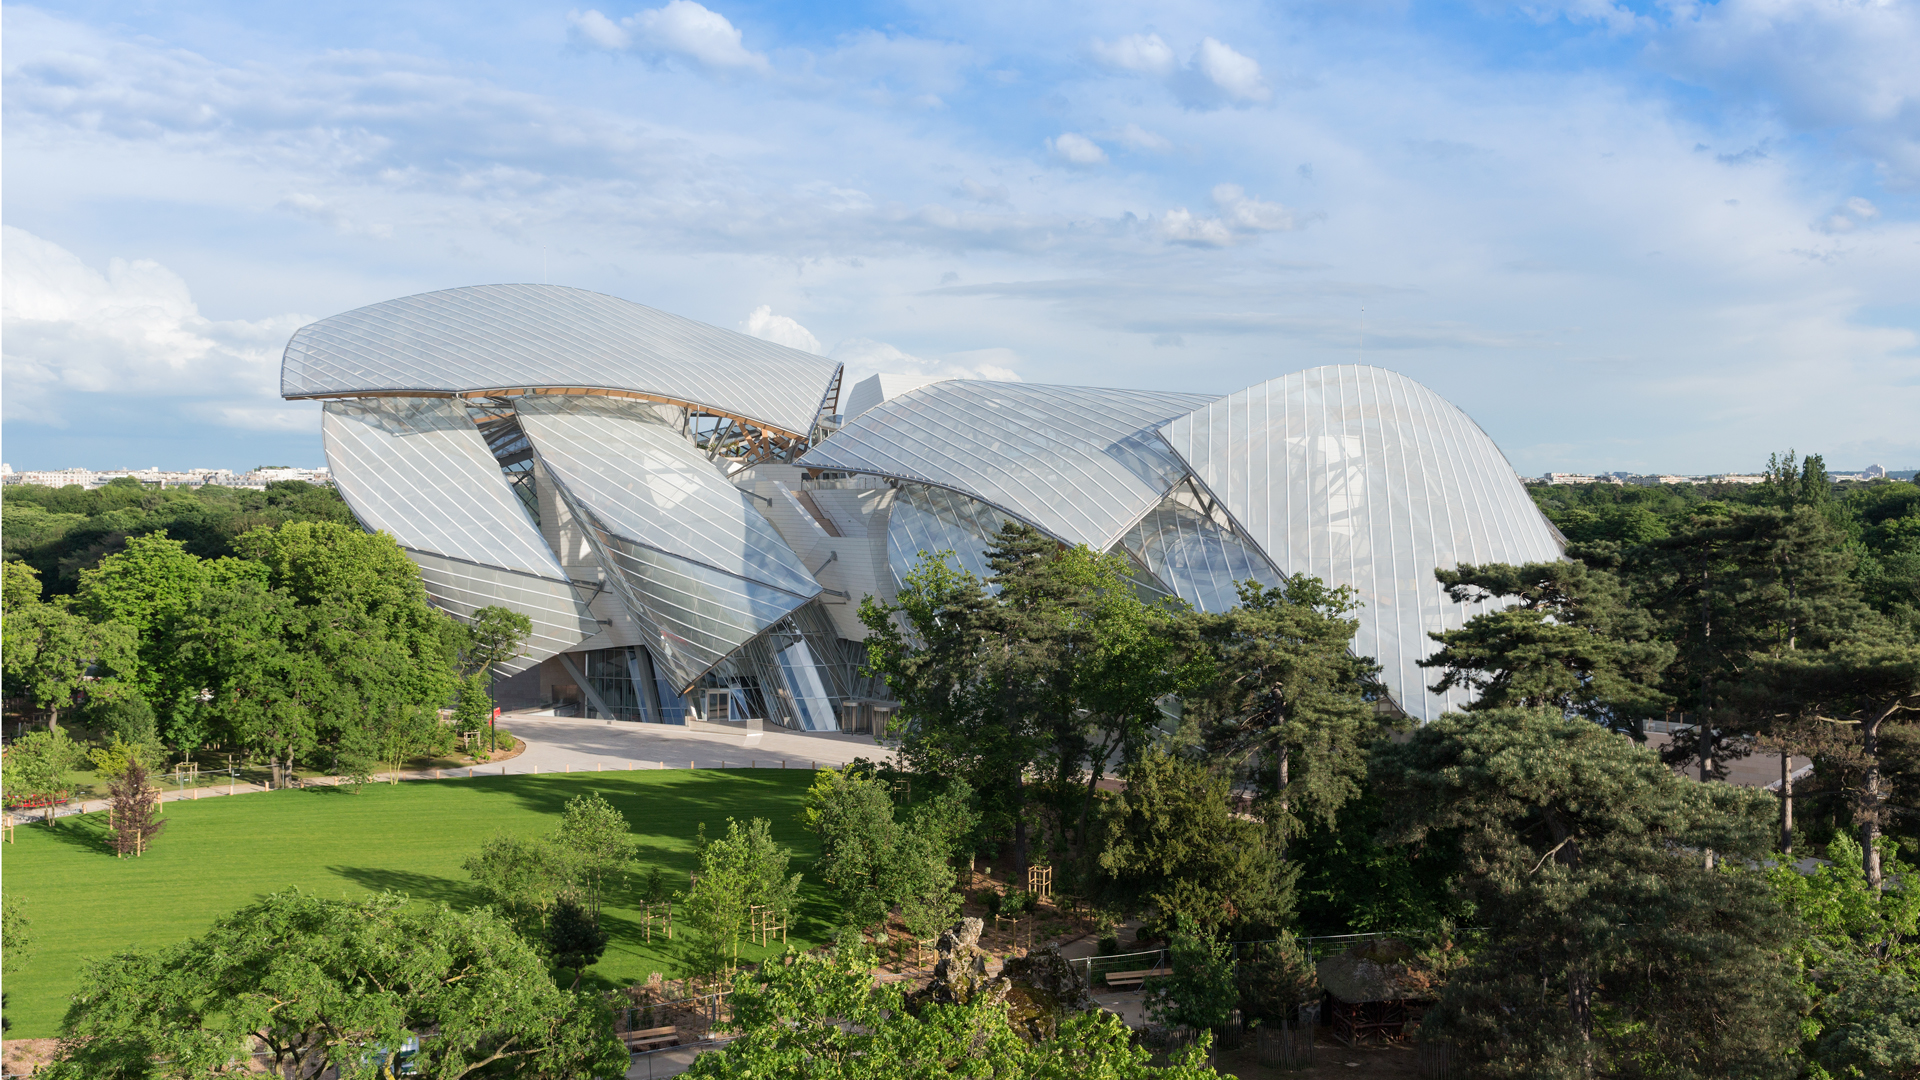 Fondation Louis Vuitton Franck Gehry